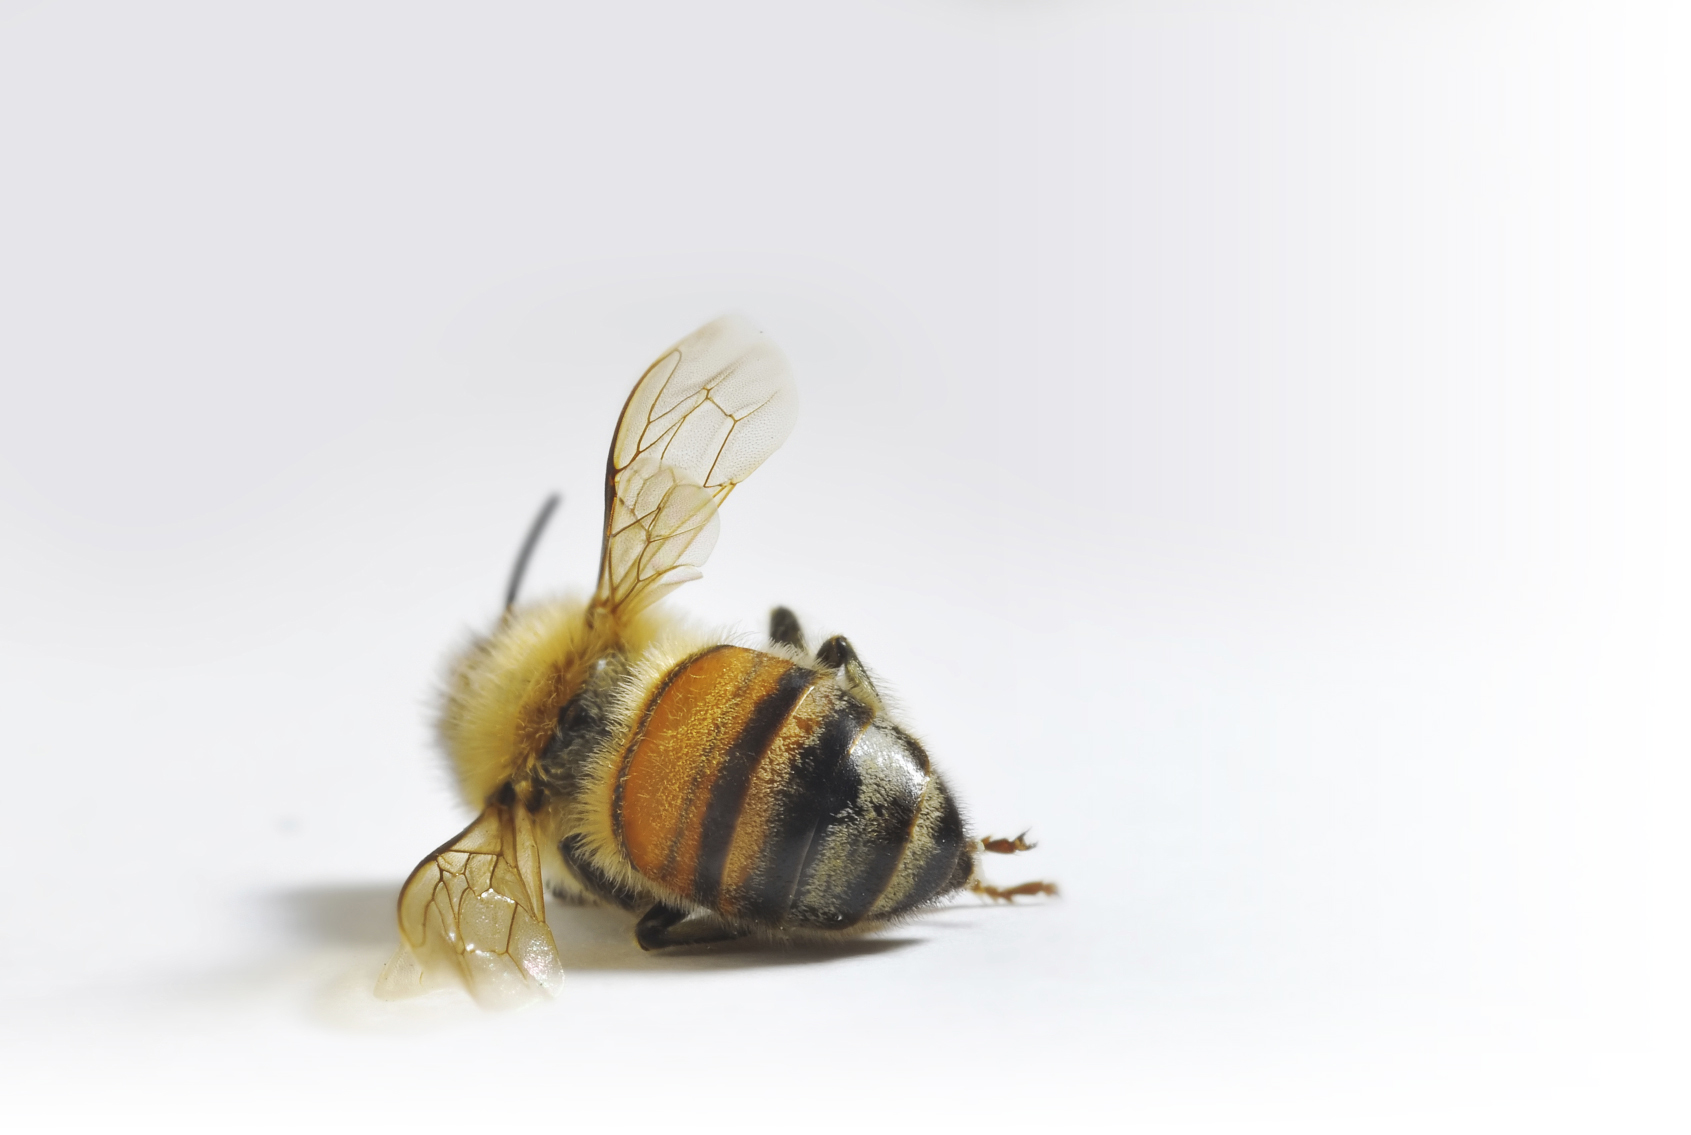 The Curious Case of the Disappearing Honey Bee